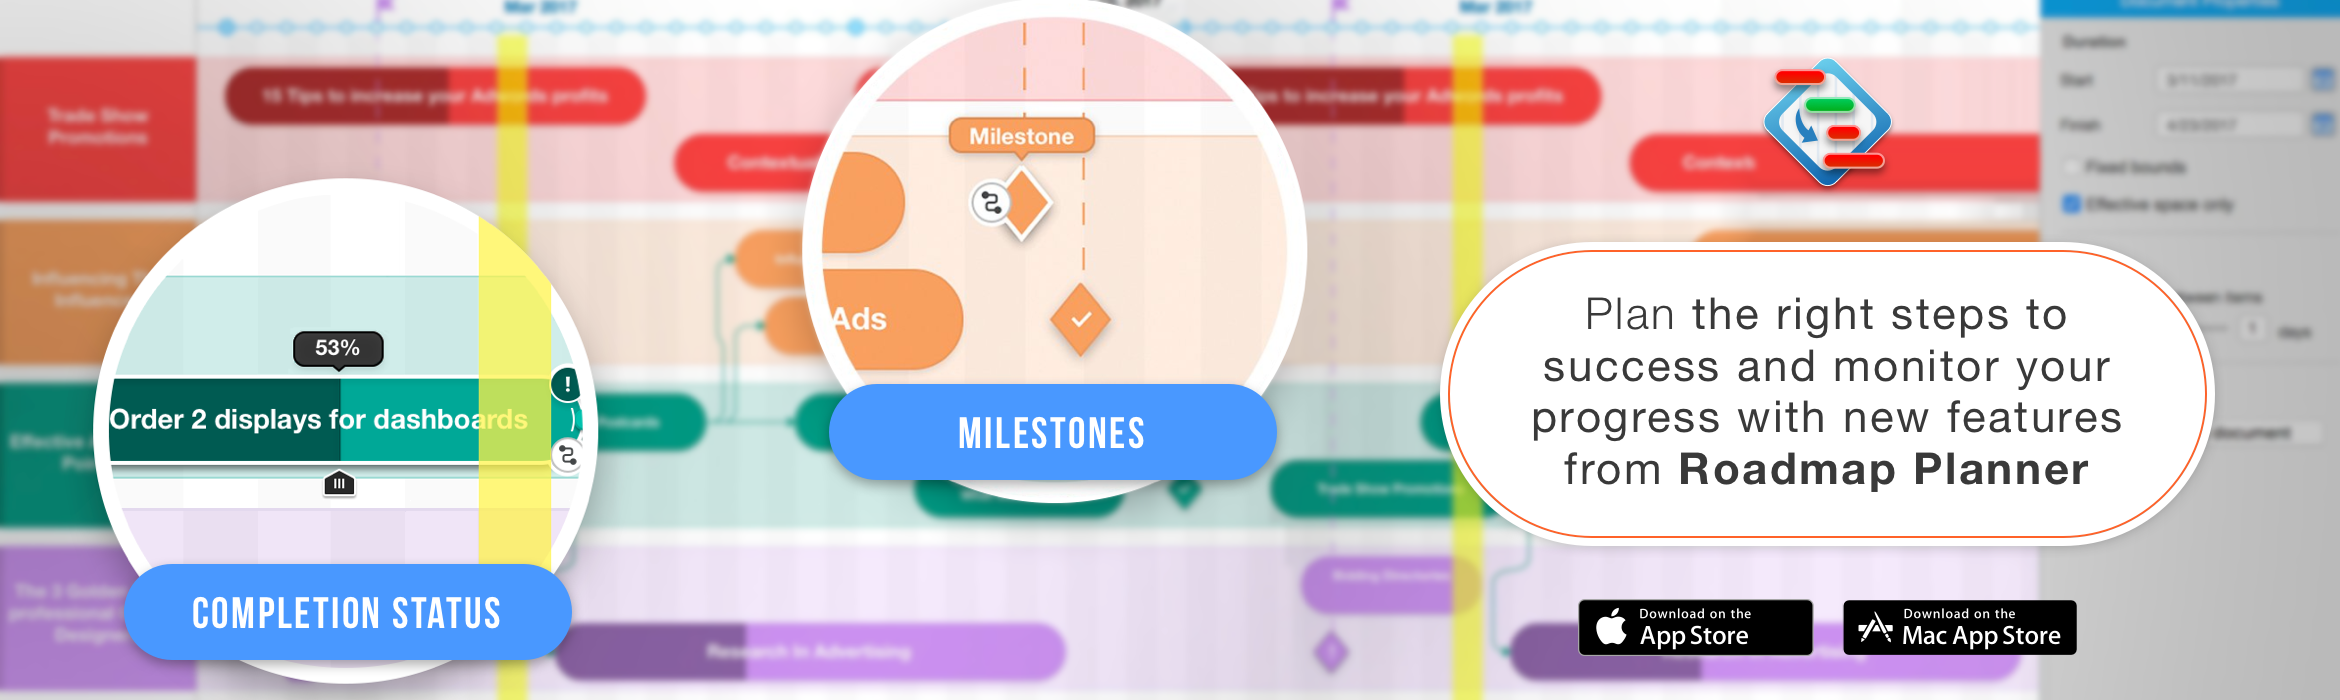 Plan the Right Steps to Success with New Features from Roadmap Planner